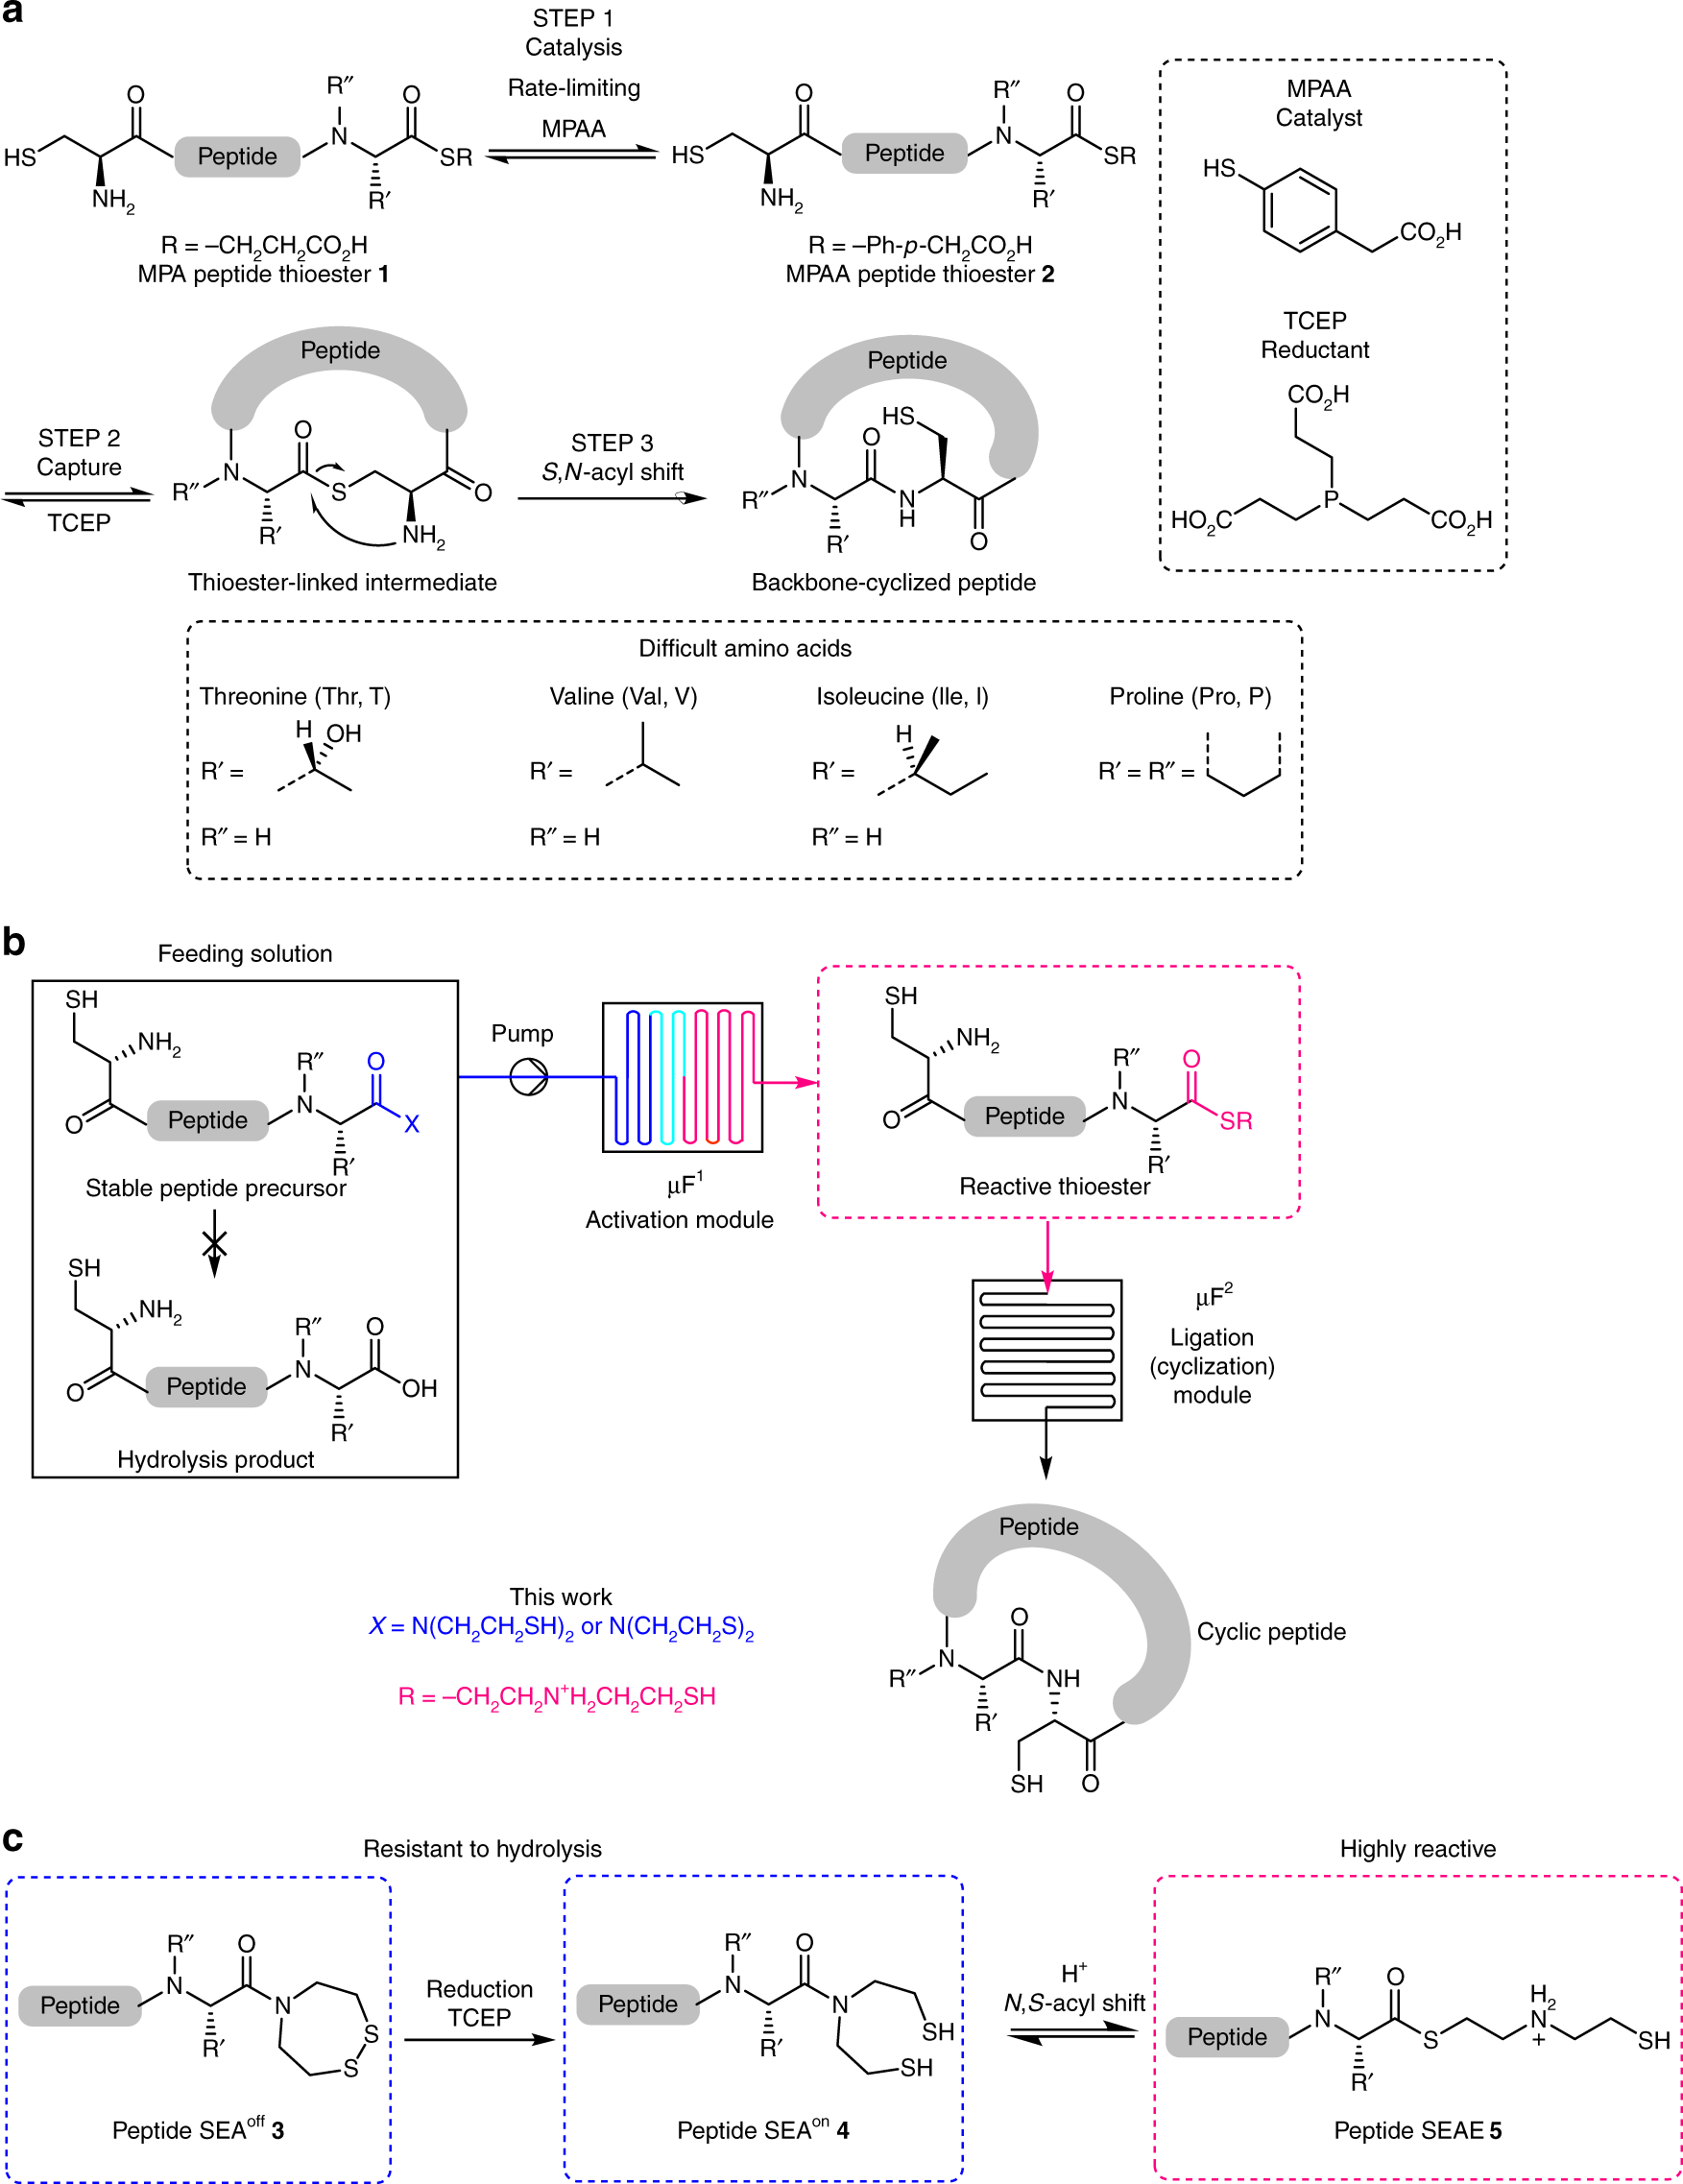 Accelerated microfluidic native chemical ligation at difficult amino acids  toward cyclic peptides | Nature Communications